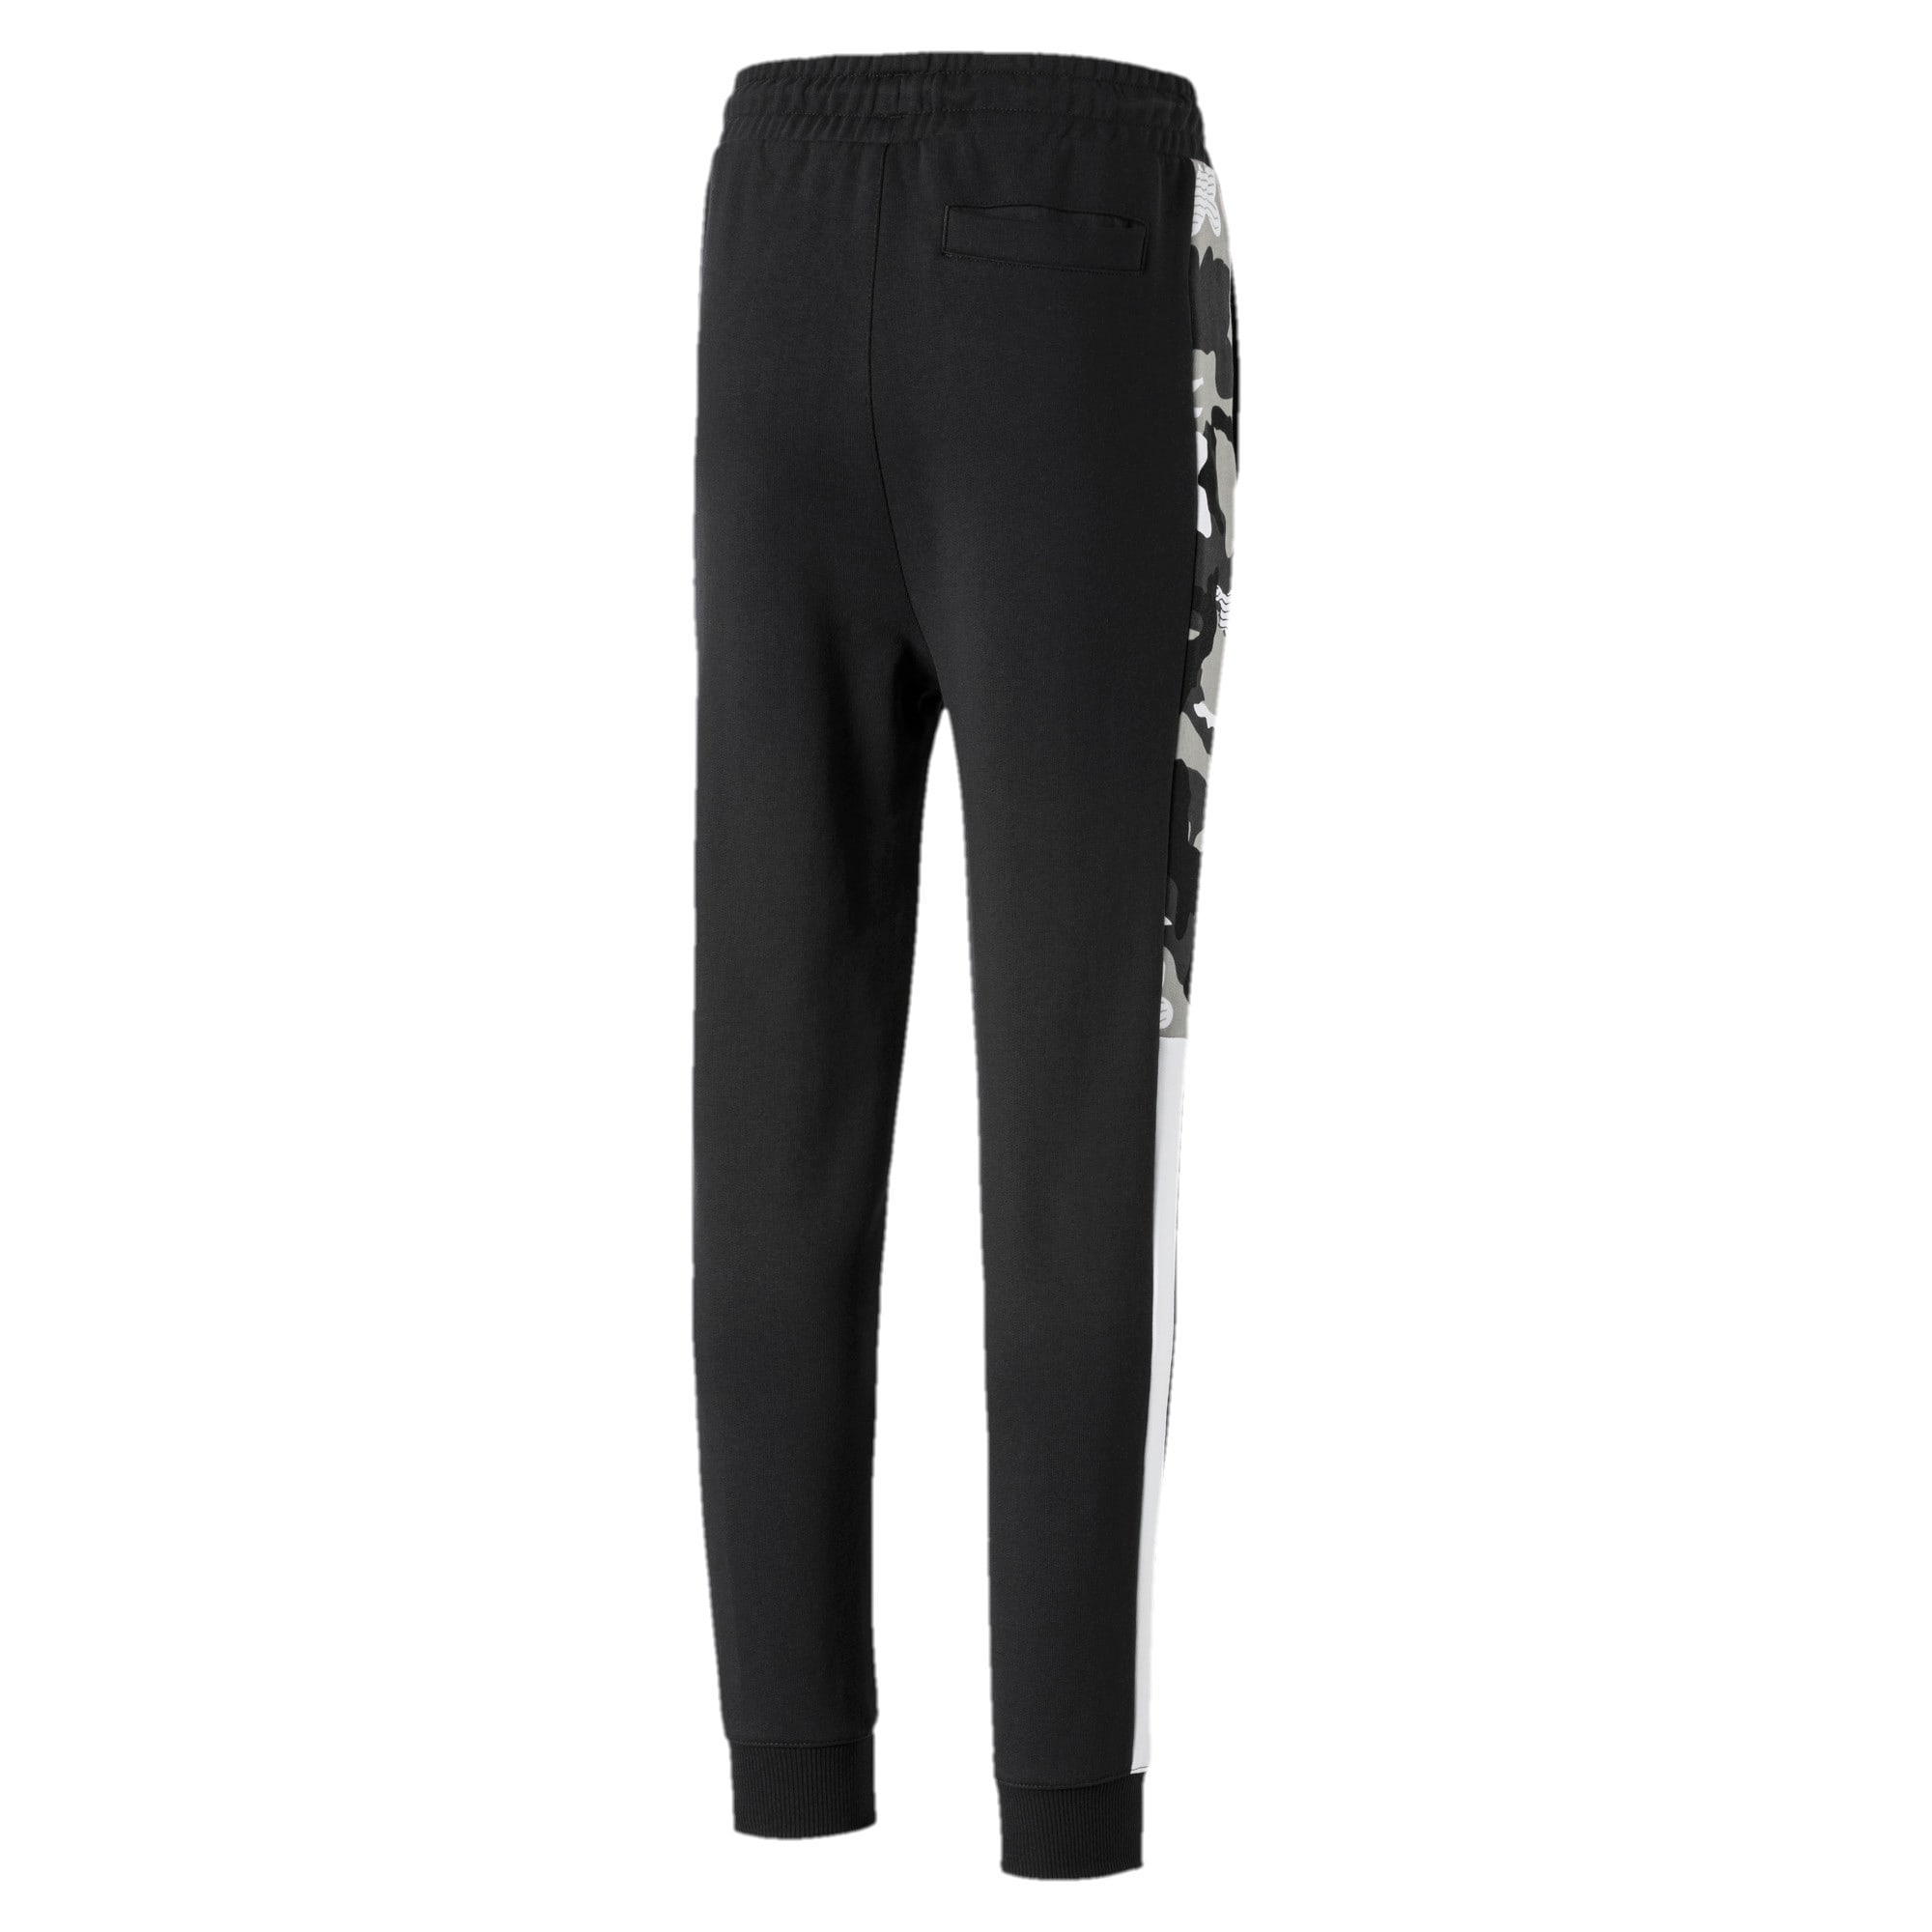 Thumbnail 2 of Classics T7 Boys' Track Pants, Puma Black, medium